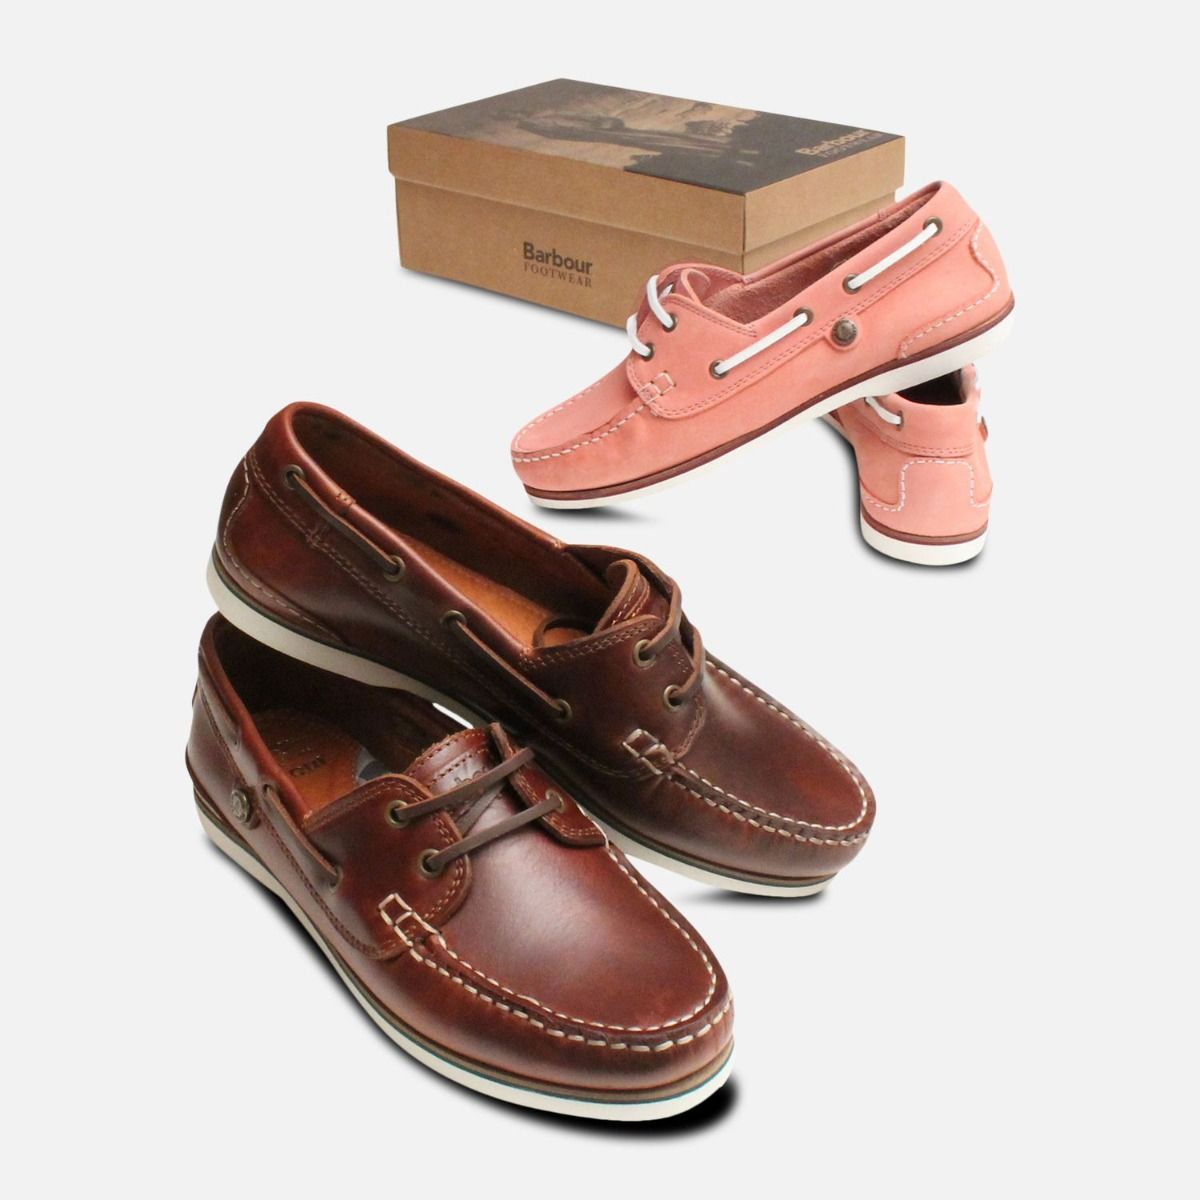 35583081 Barbour Brown Waxy Mahogany Bowline Boat Shoes